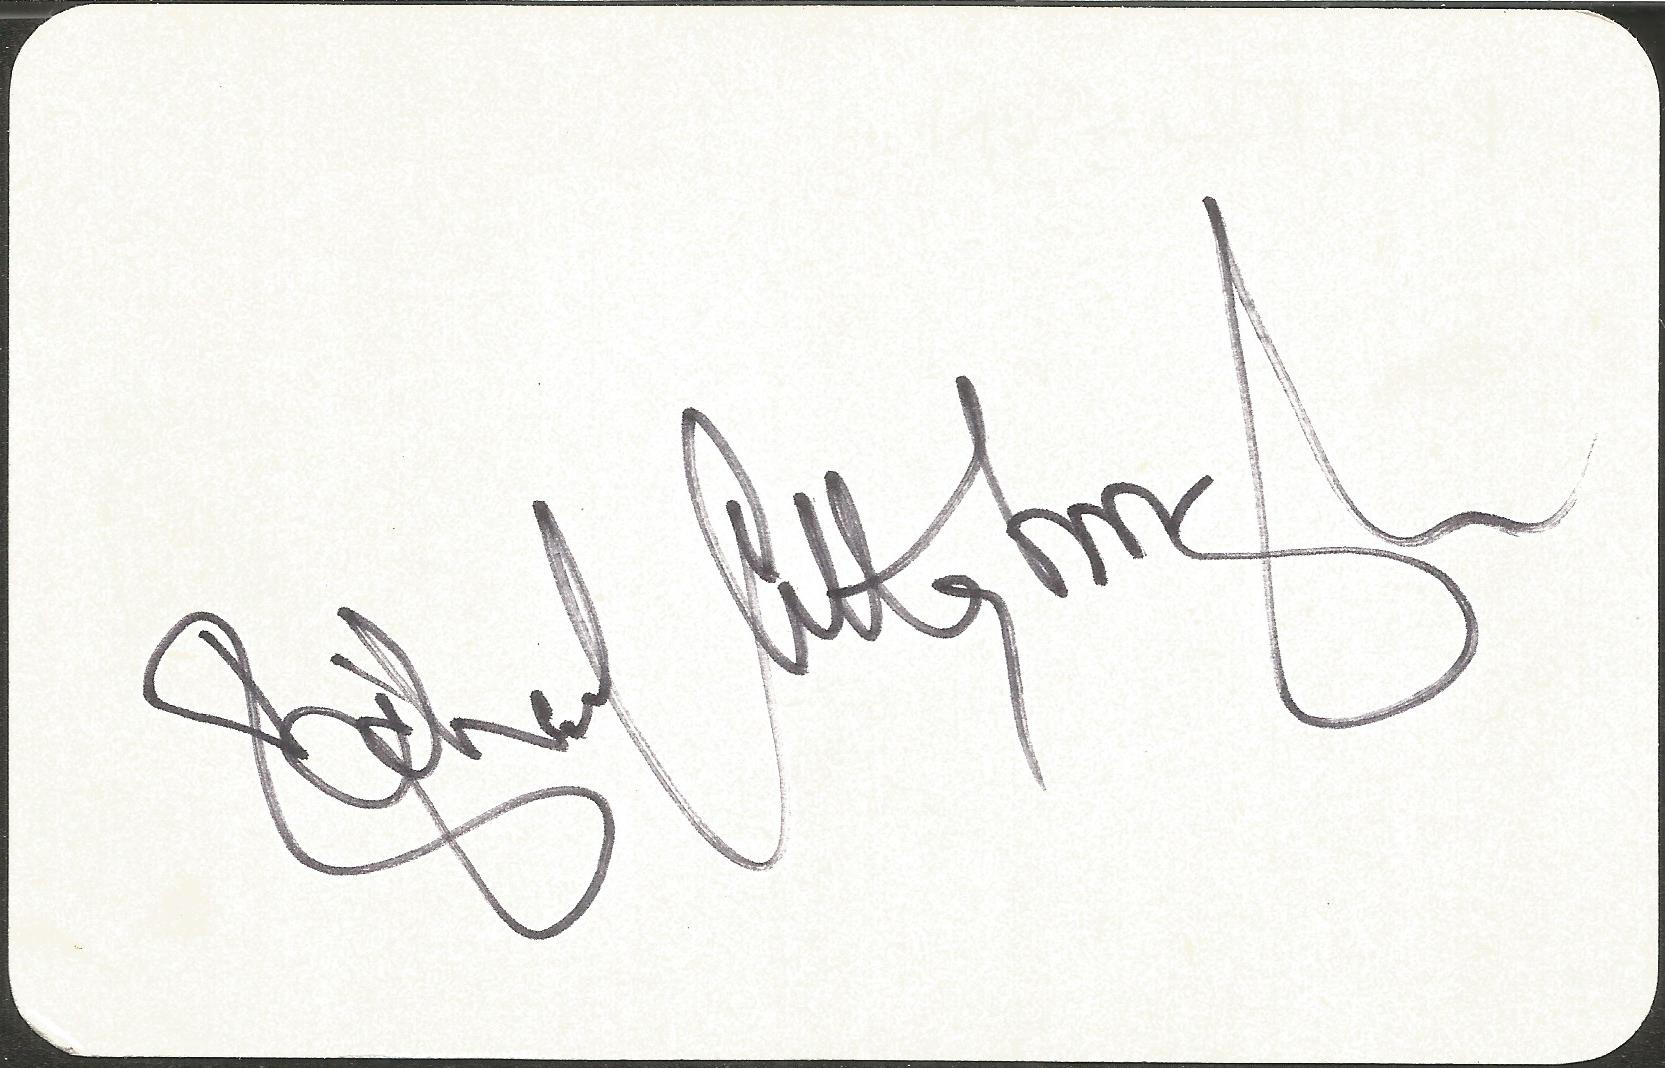 Richard Attenborough signed 4 x3 cream card. Good condition. All autographs come with a